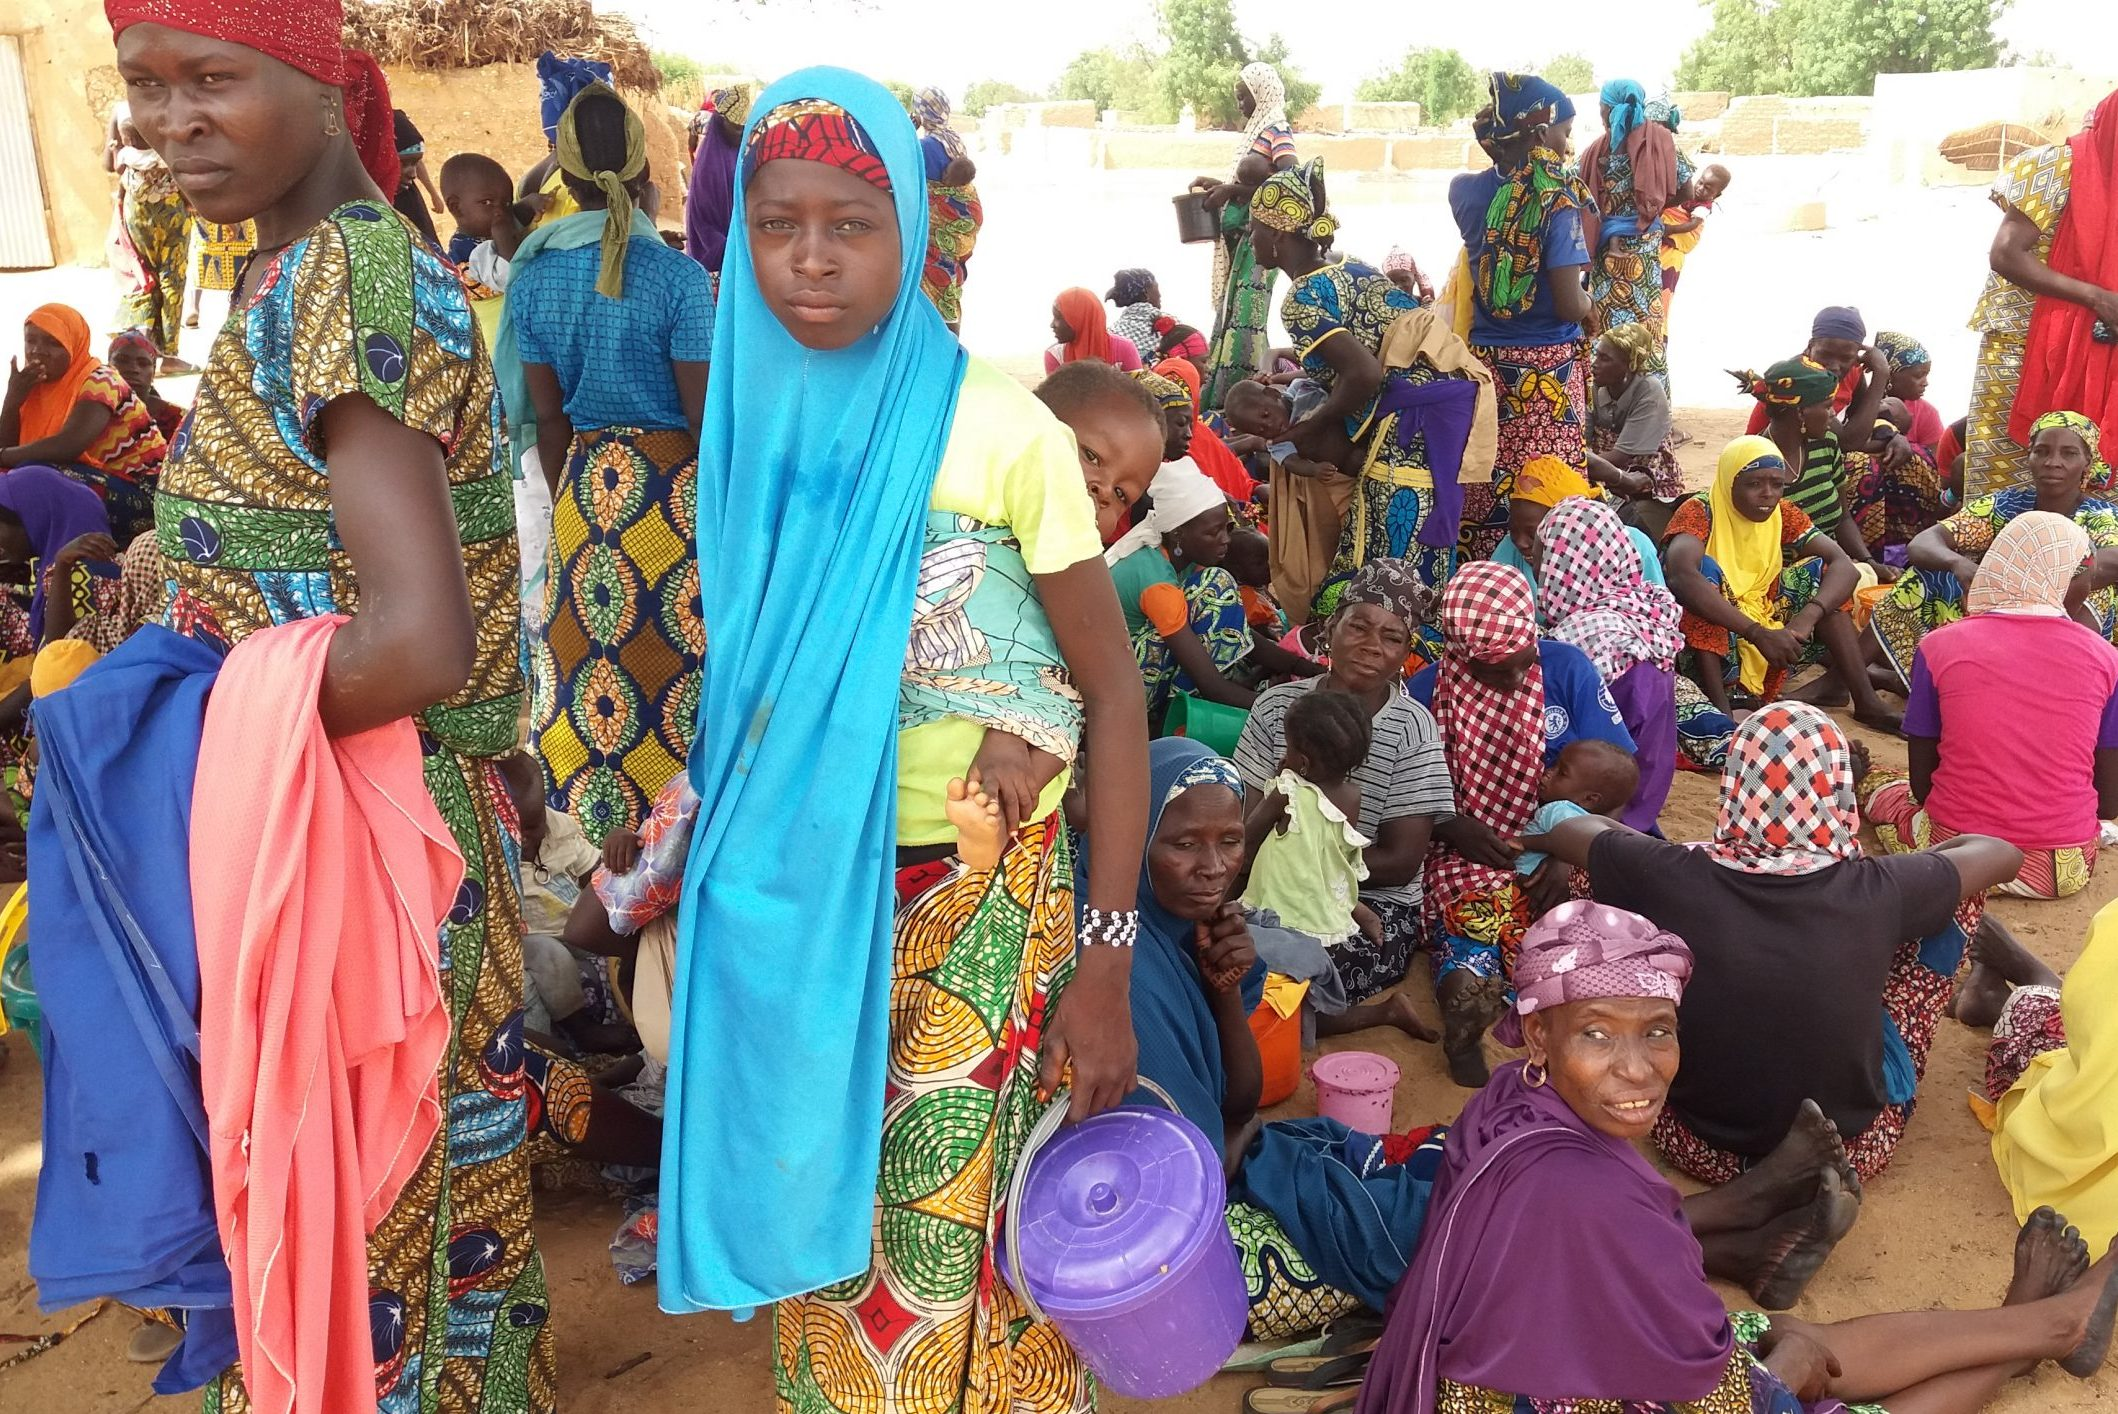 A stock image of women and children in Niger (© Aid to the Church in Need)